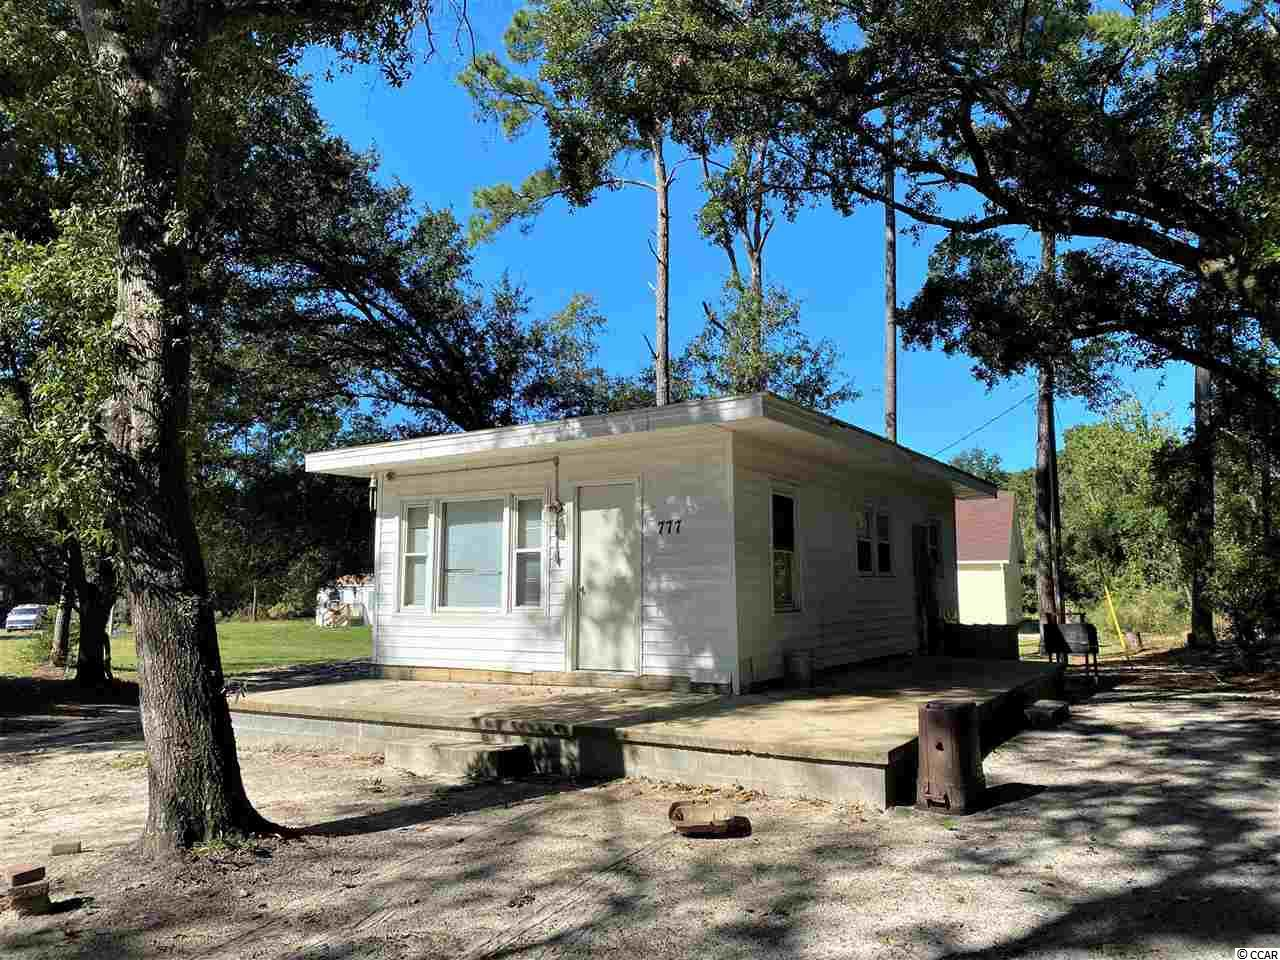 Great INVESTMENT or GET-A-WAY property that sits on .41 acre of land surrounded by beautiful tall oak trees in Little River, just minutes from Cherry Grove Beach. This unique one bedroom, one bath house has great potential. A MUST see!